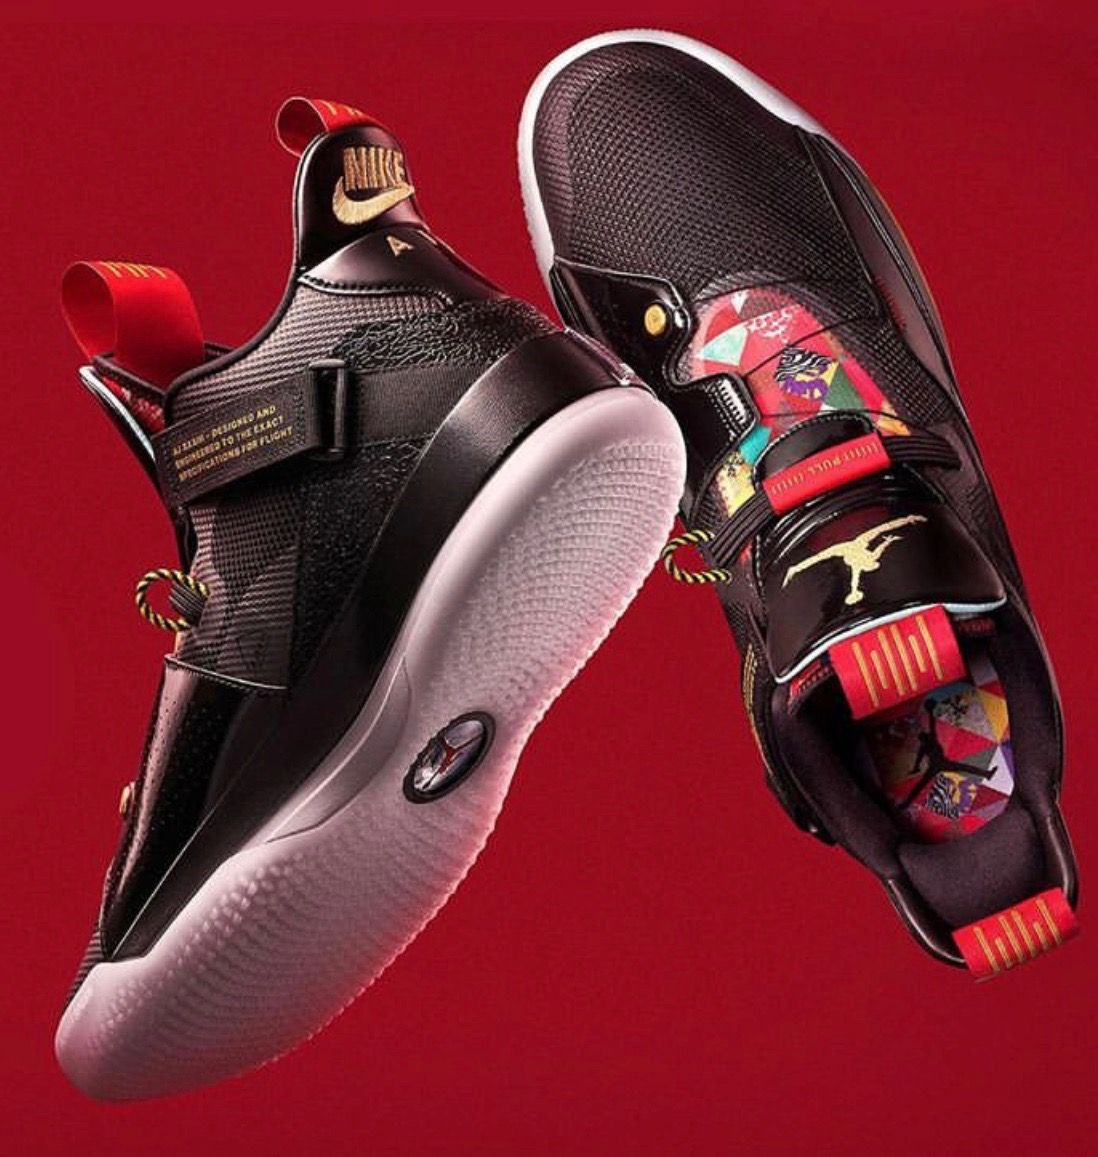 741983f6758d88 Chinese New Year Jordans 33